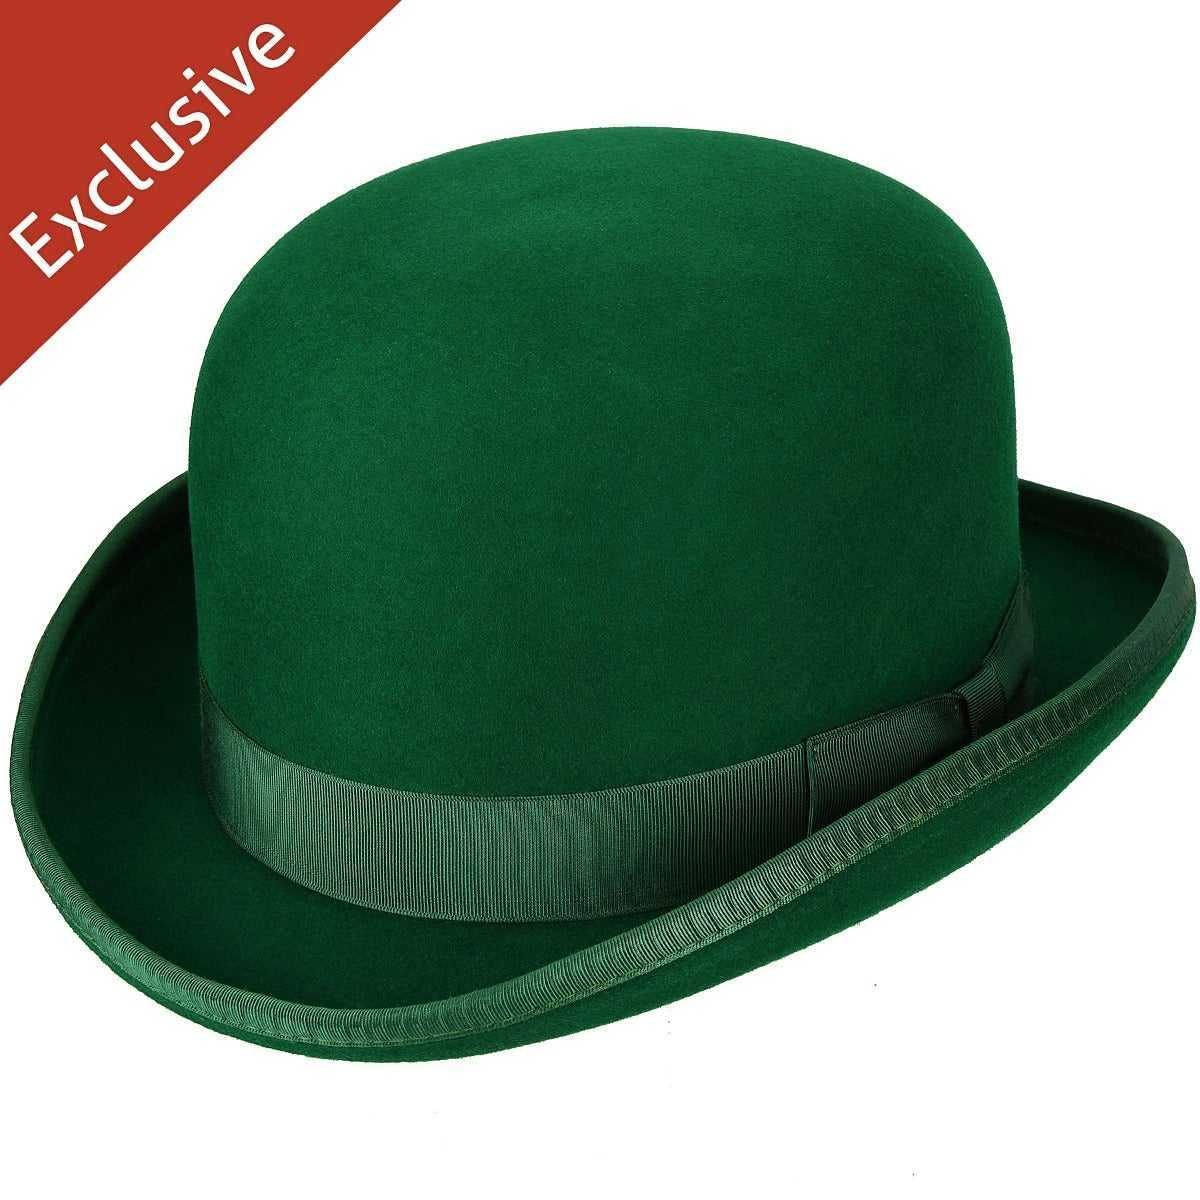 Hats.Com Steed Derby Hat - Exclusive Kelly Green USA - GOOFASH -